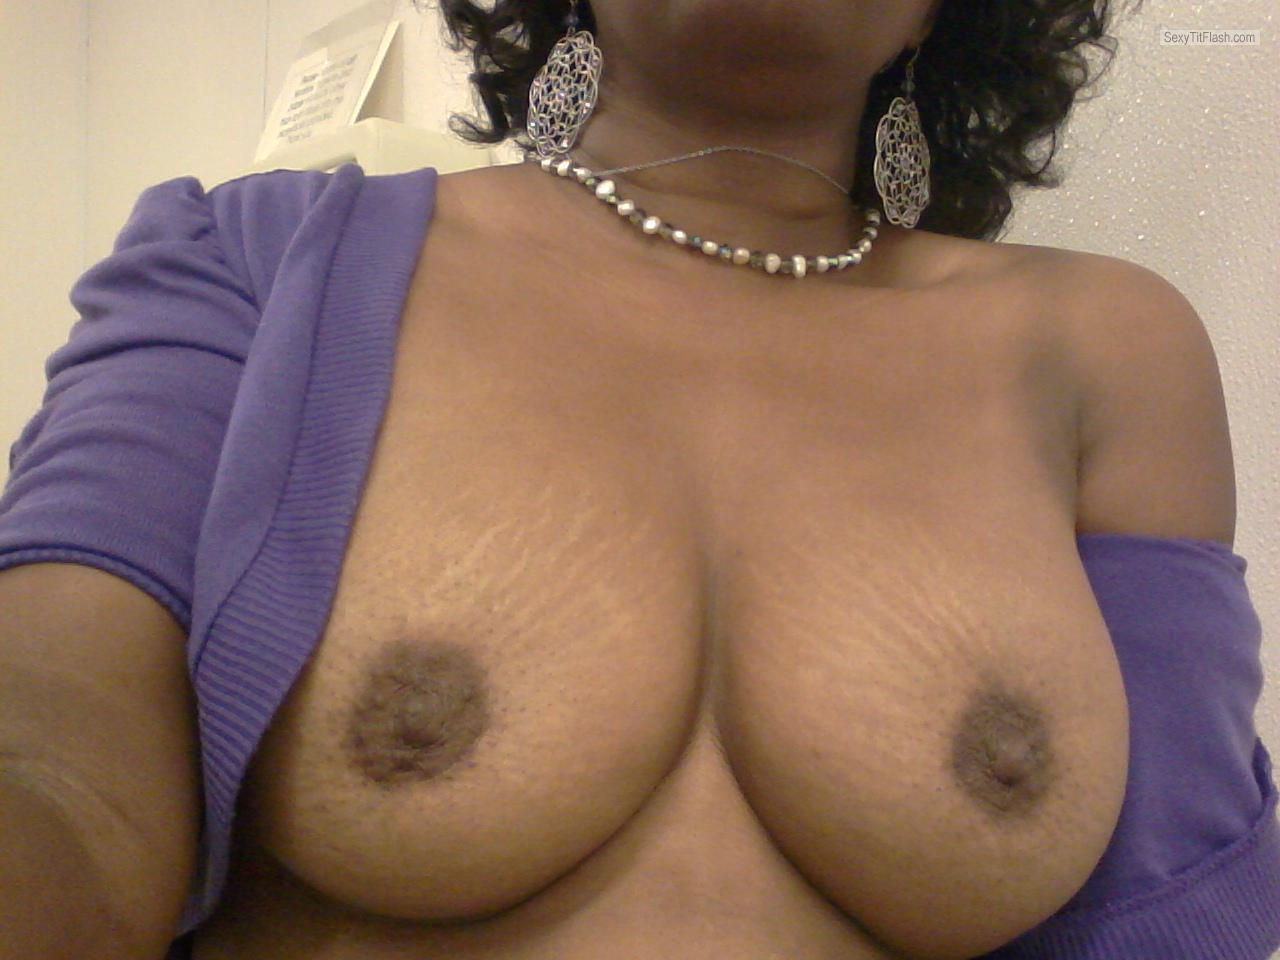 Medium Tits Of My Wife Selfie by Samantha